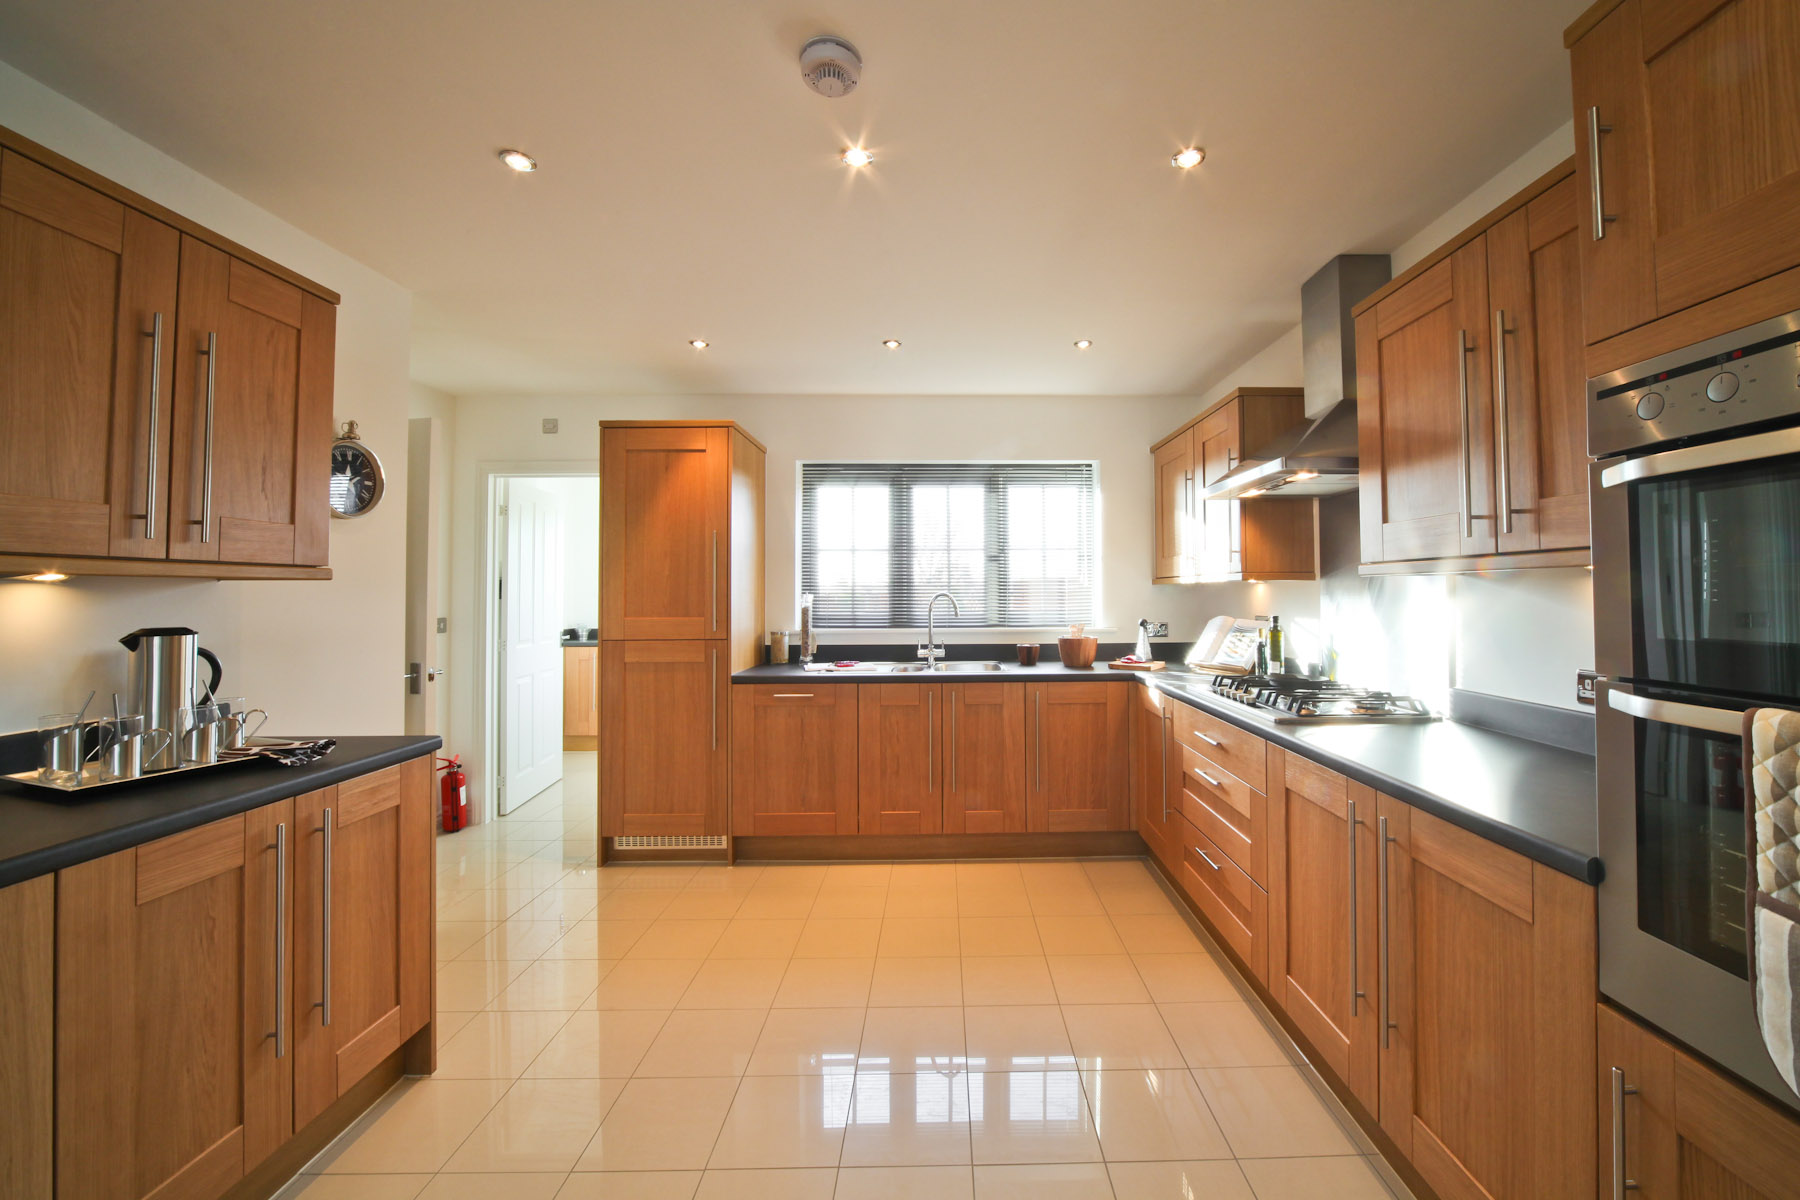 Taylor Wimpey typical kitchen